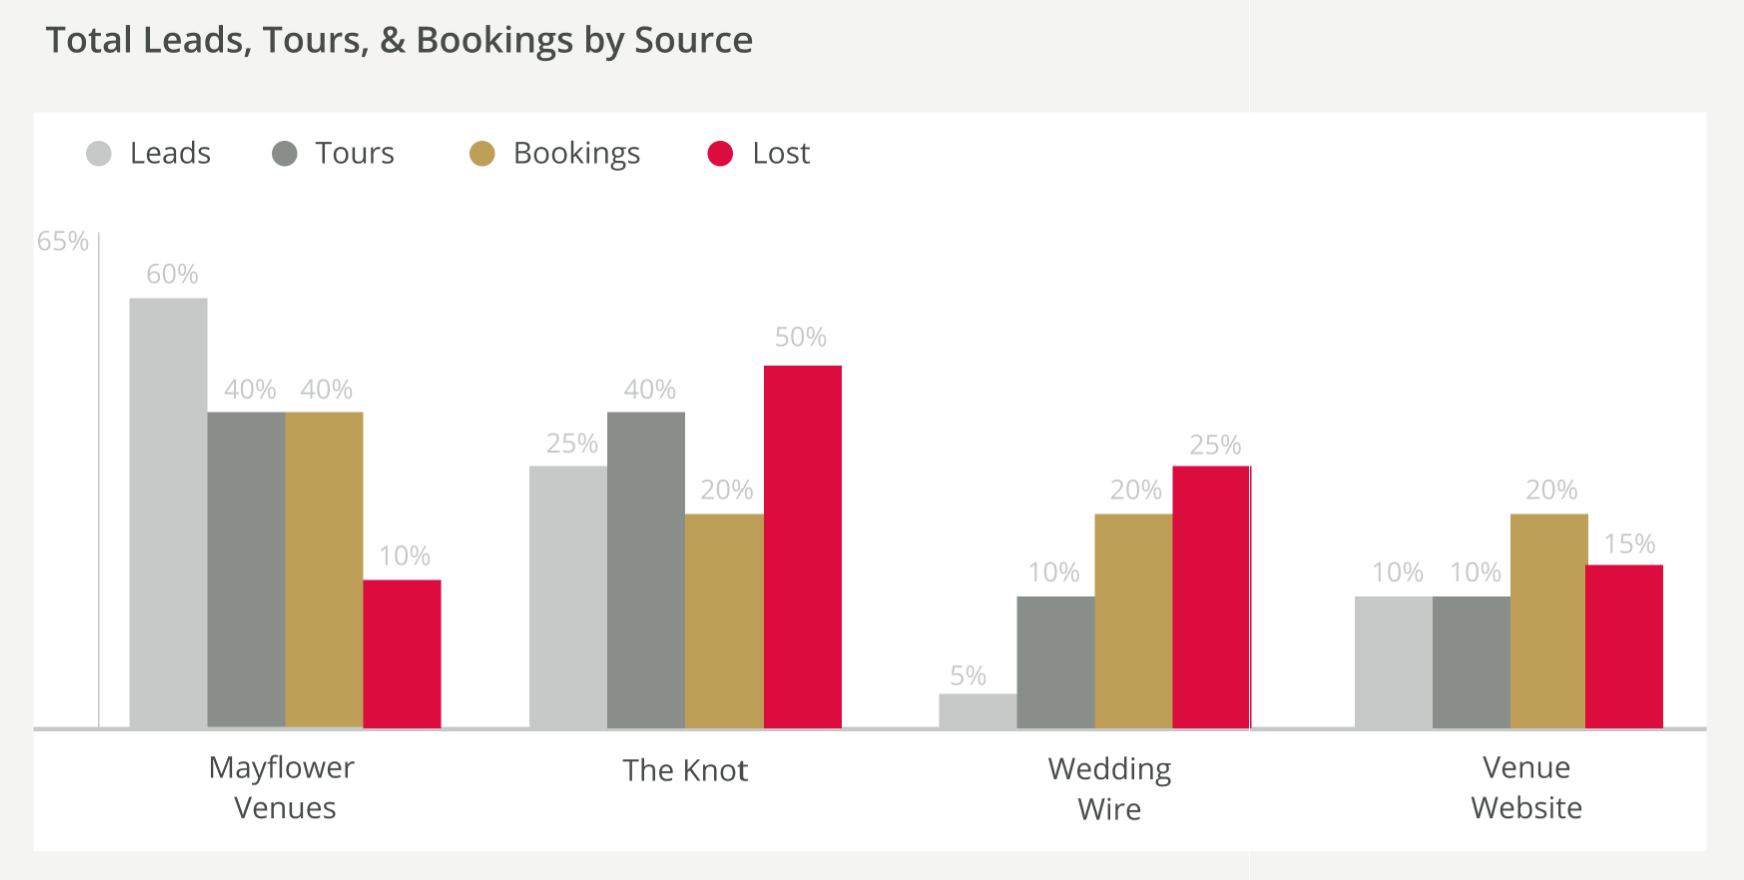 Total Leads, Tours, & Booking by Source